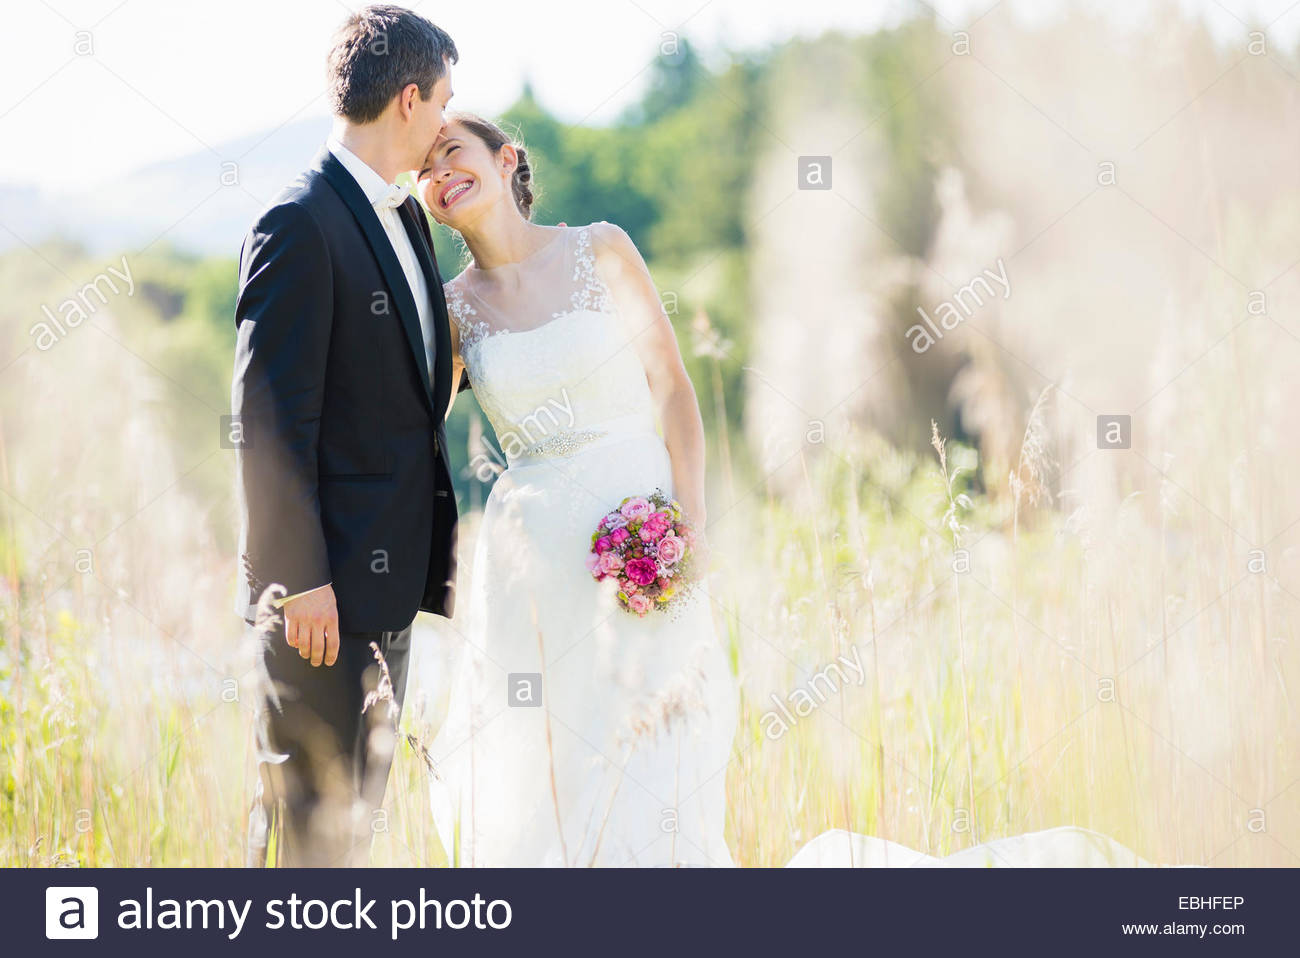 Candid portrait of bride and bridegroom in field - Stock Image